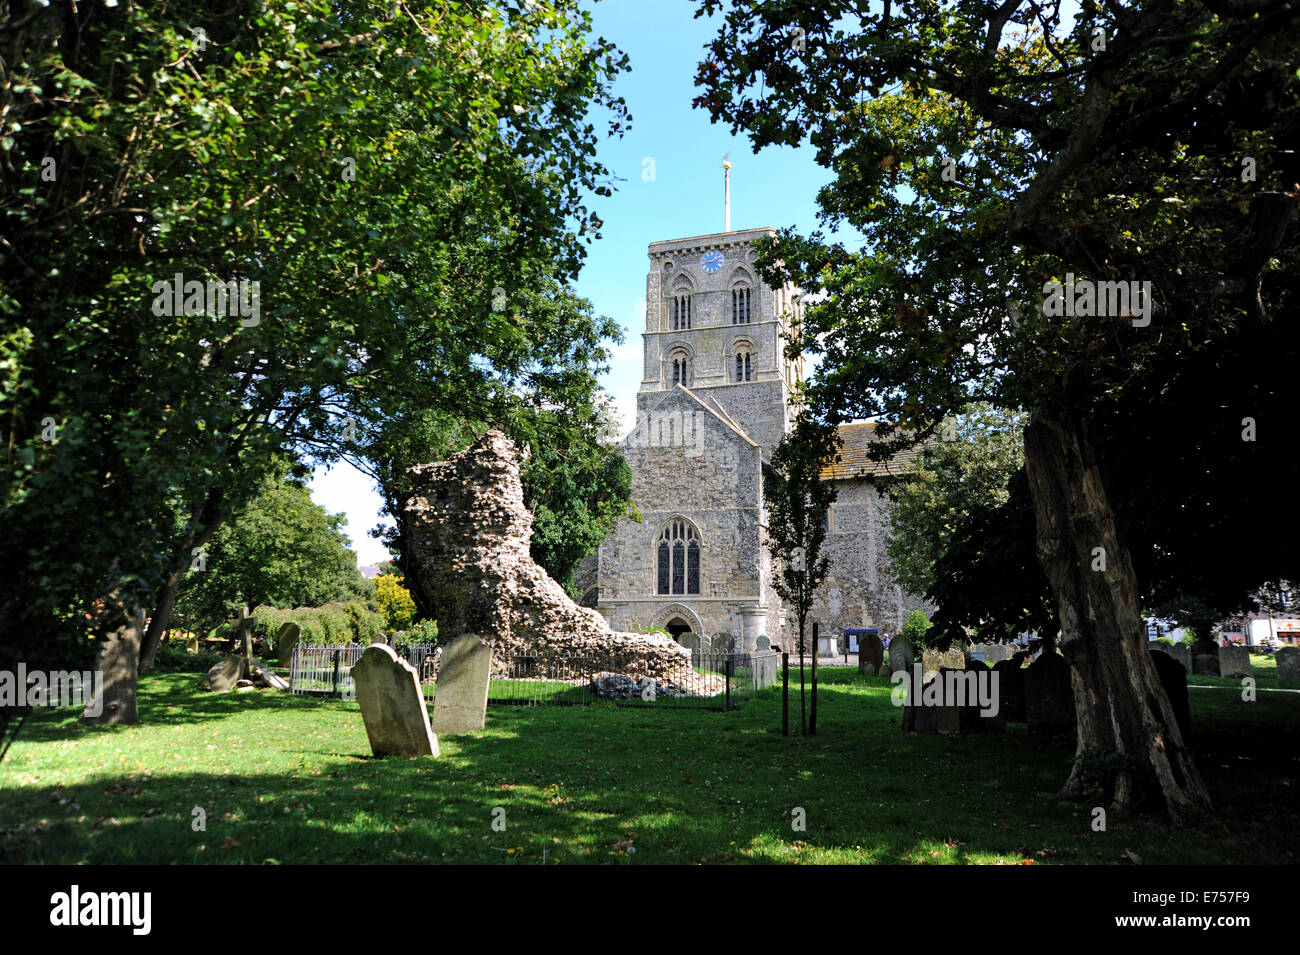 Shoreham  Sussex UK Church of St Mary de Haura in Shoreham dates back 900 years to the year 11000 AD - Stock Image